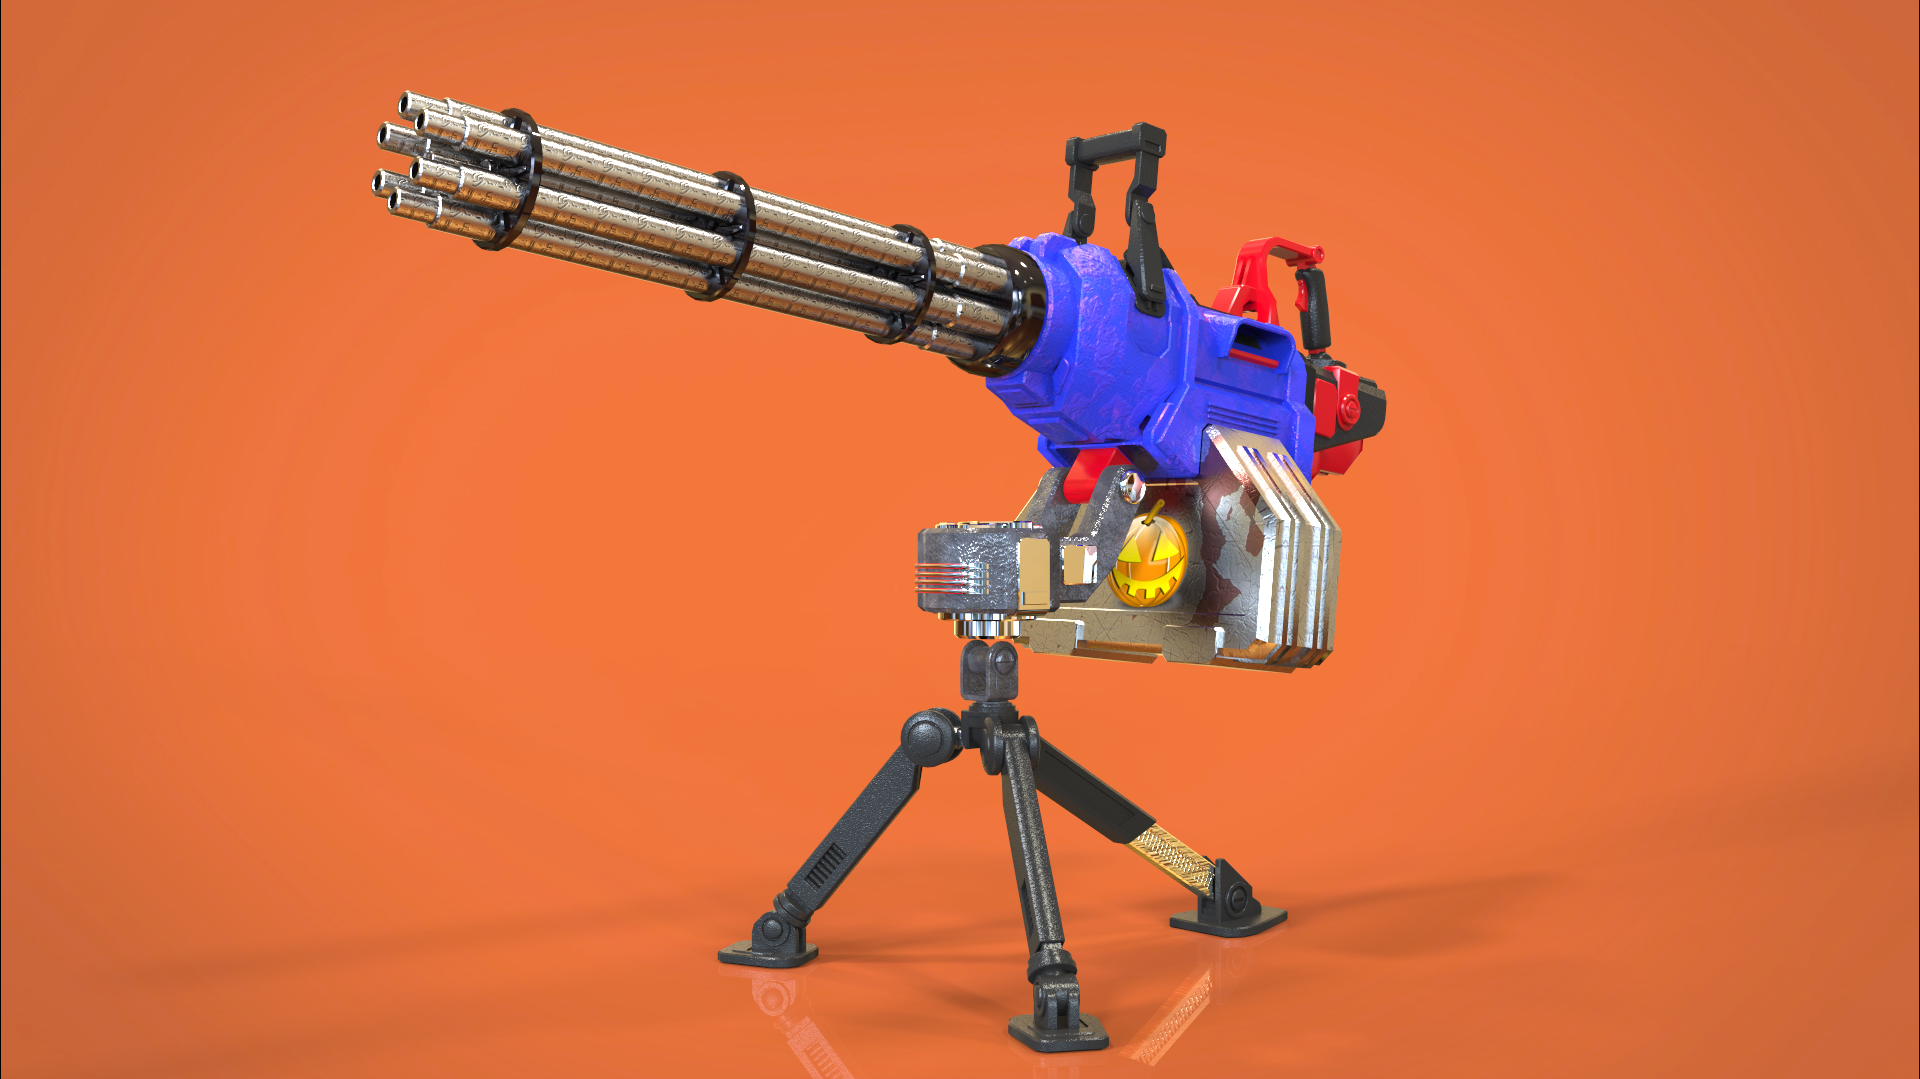 Just mini gun